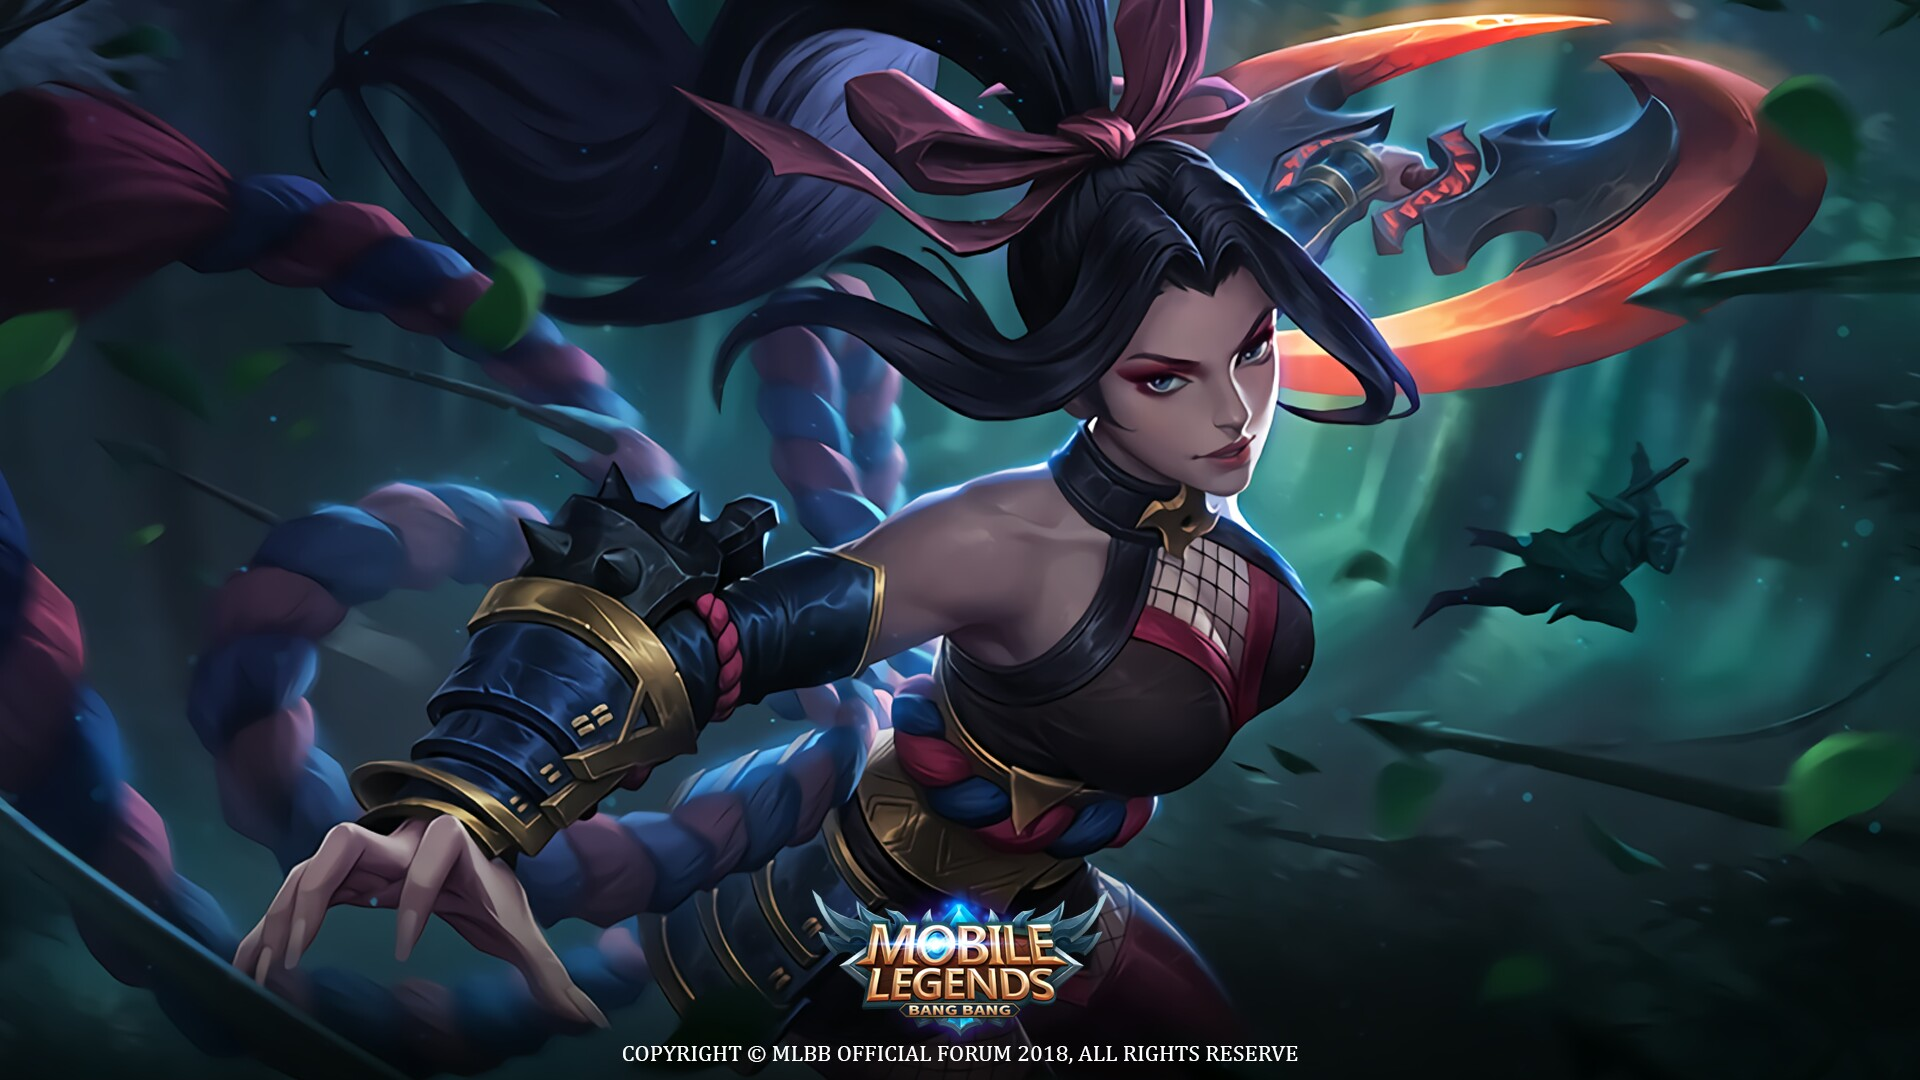 120 Best Mobile Legends Wallpapers Ever Download for Mobile 1920x1080